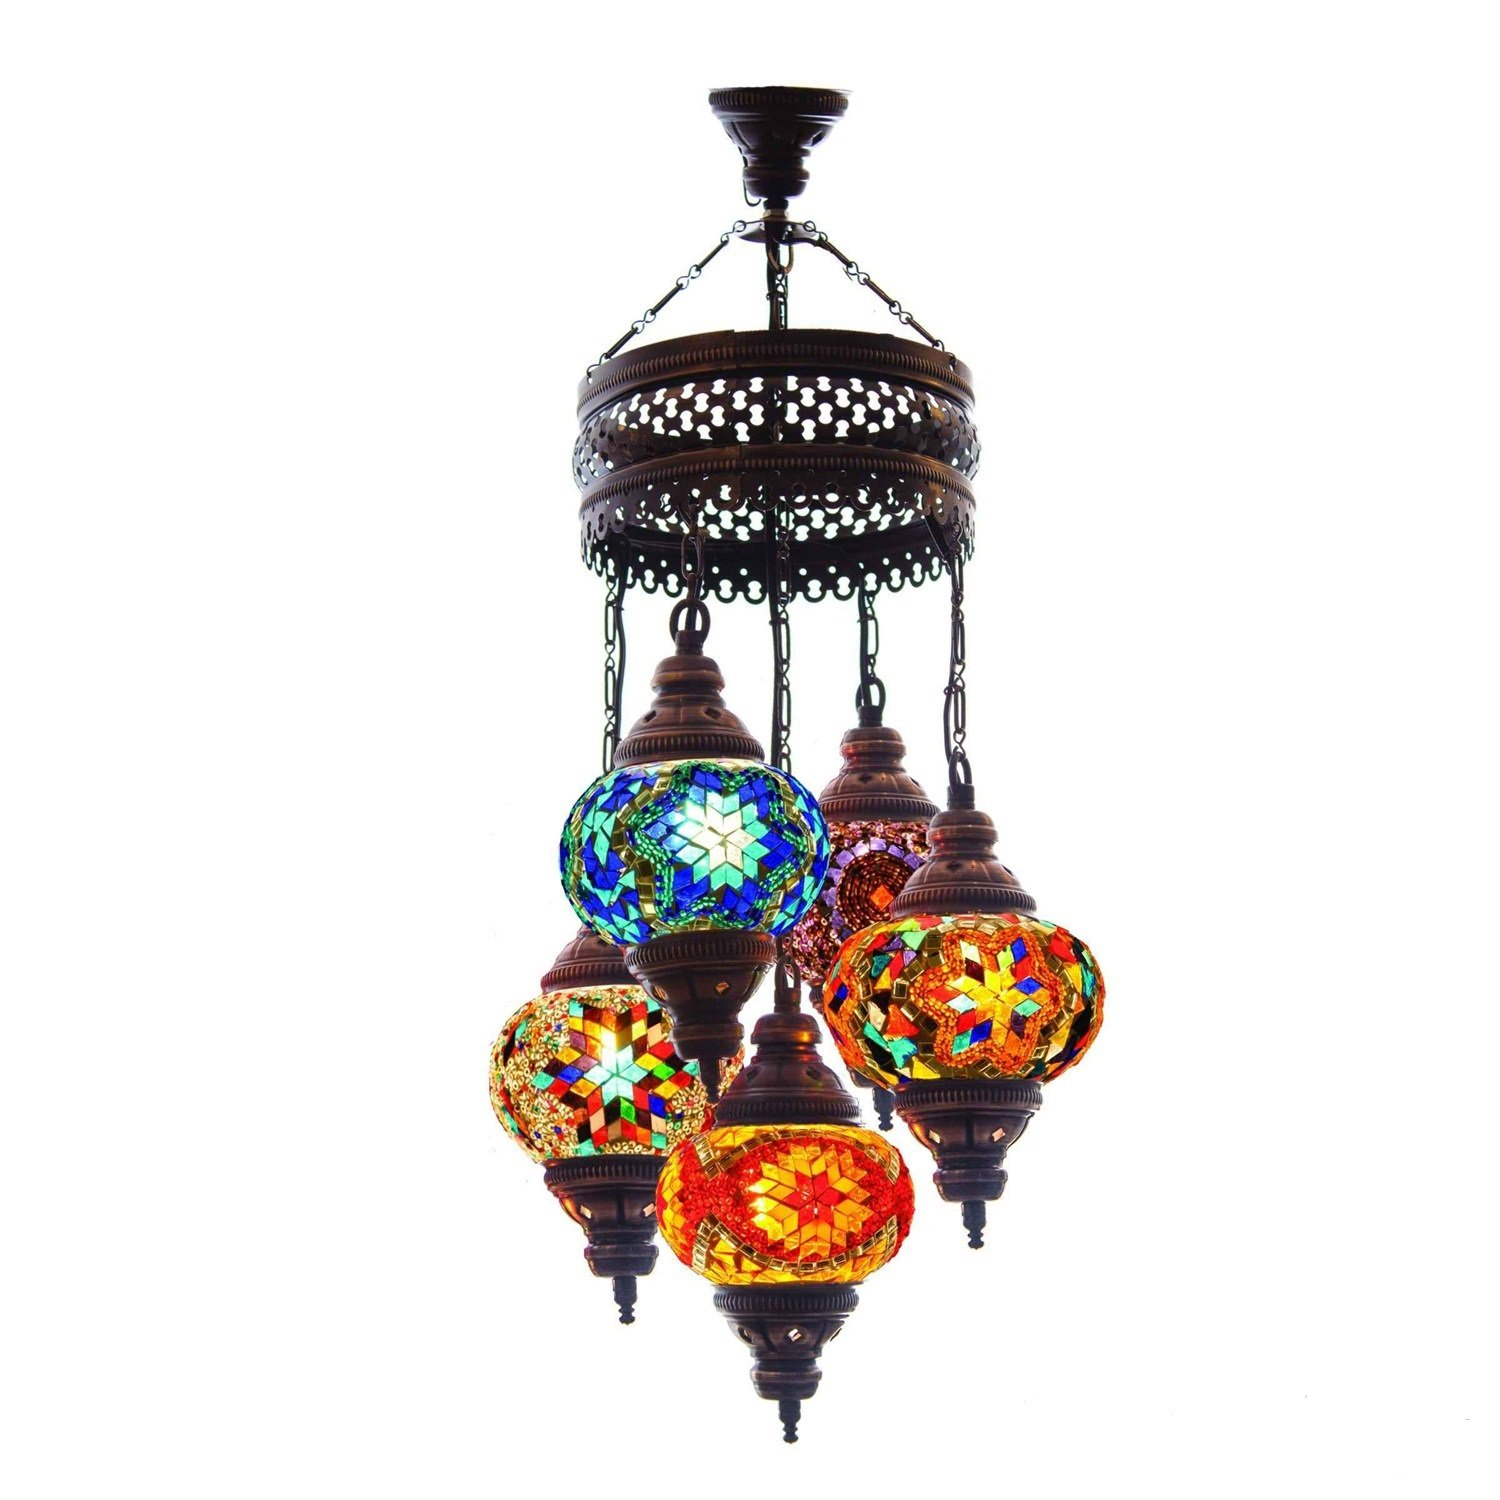 Turkish Authentic 5 Globe Mosaic Chandelier Mosaic Lamp Moroccan